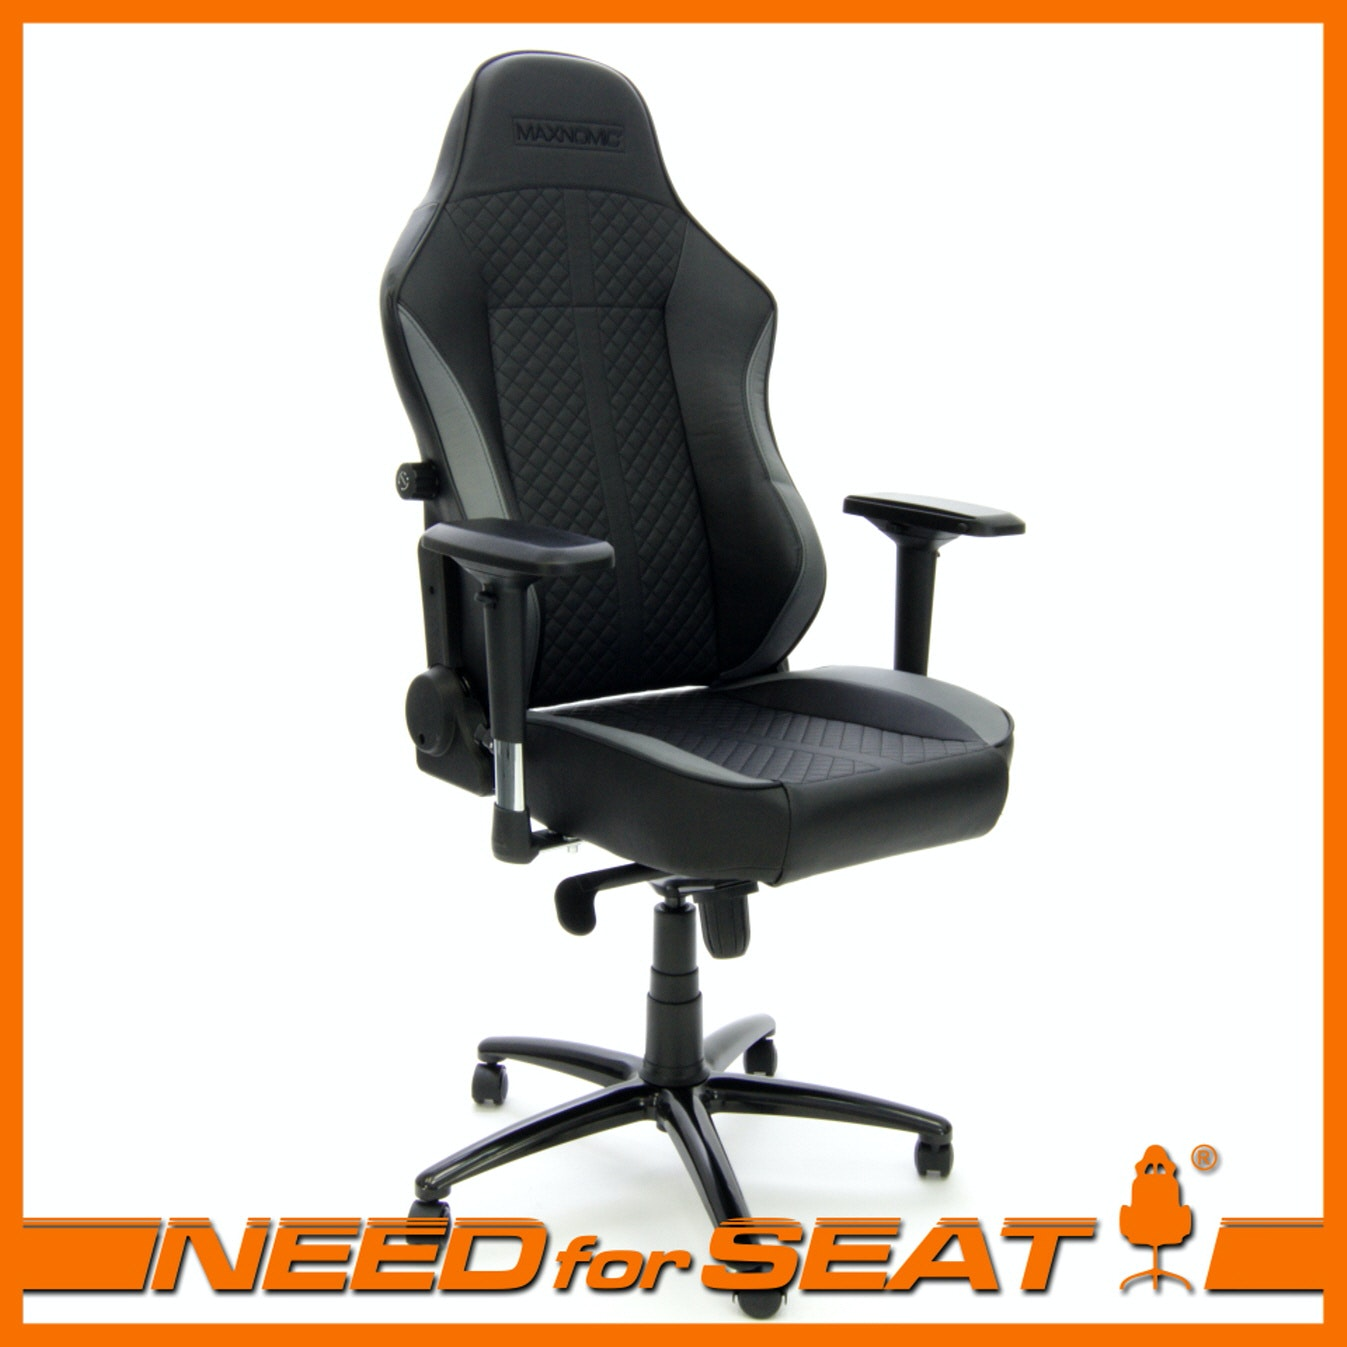 maxnomic computer gaming office chair classic office needforseat usa heavy d